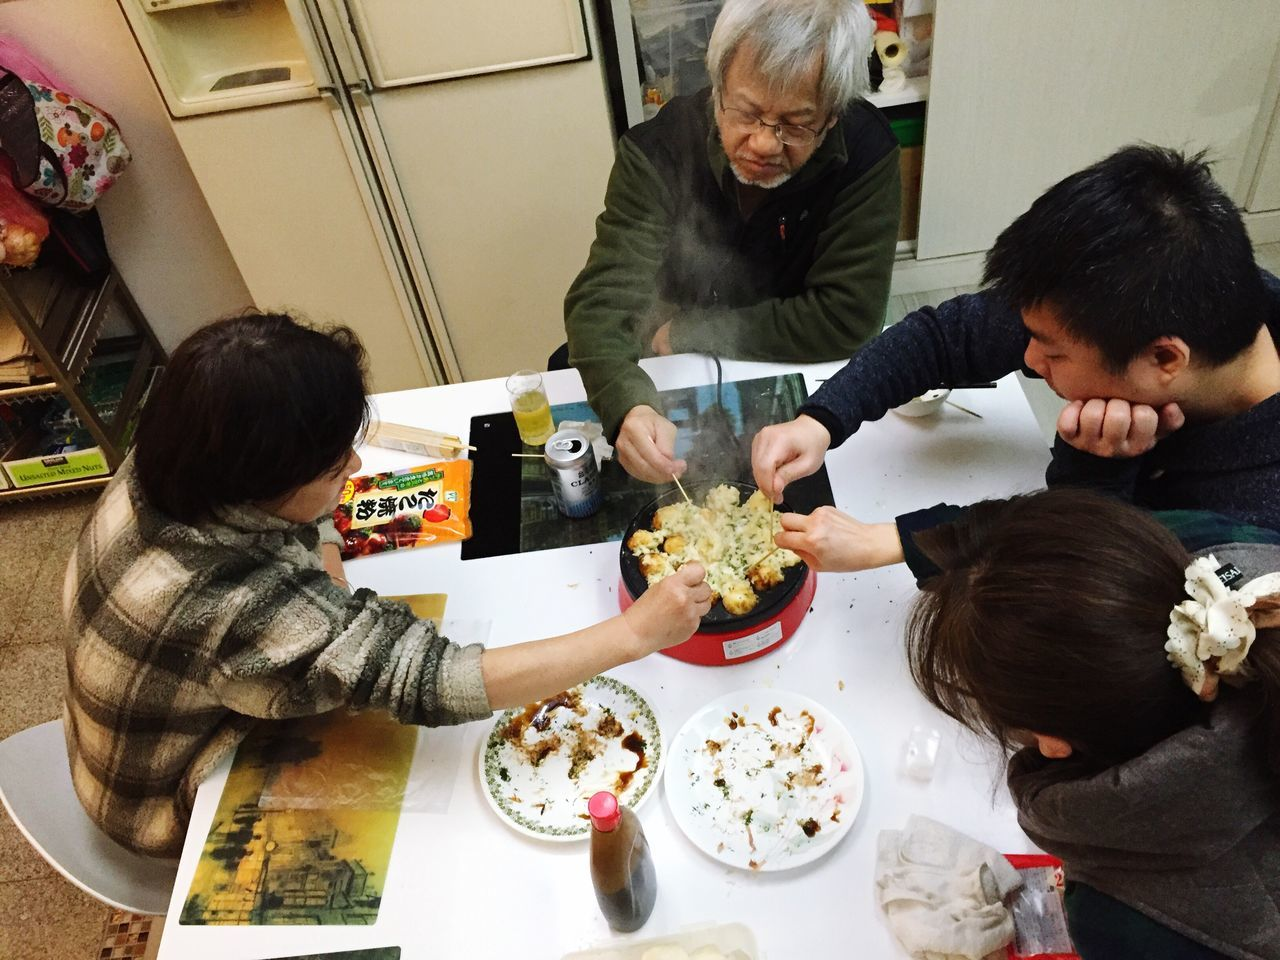 Original Experiences Experienced the Tacoyaki During Chinese New Year With Family . It's so Funny and Delicious .